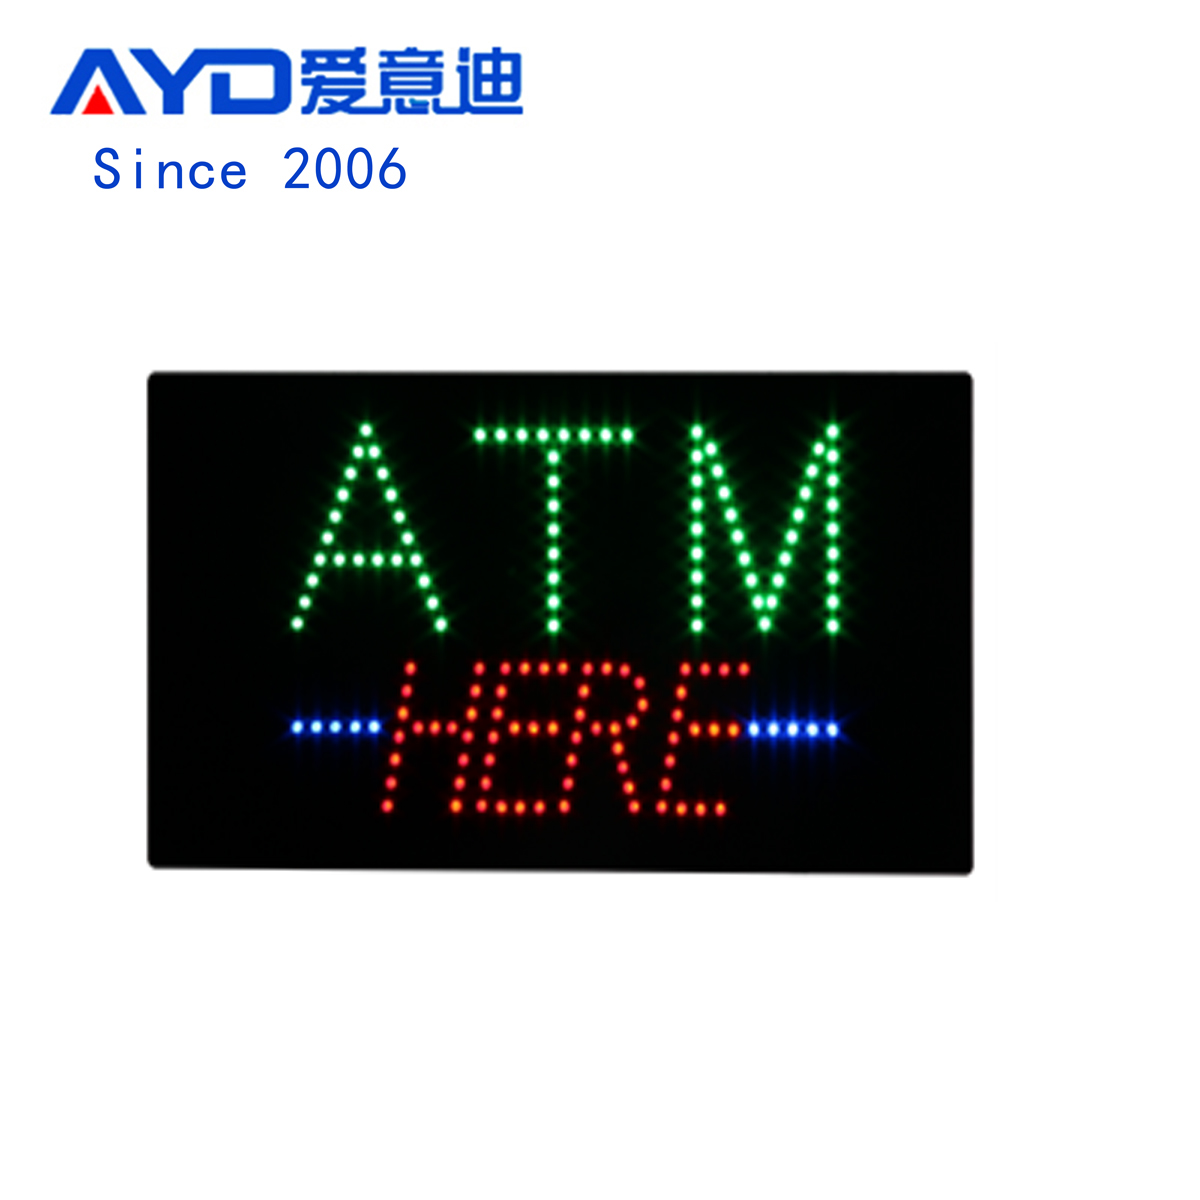 AYD LED Bright ATM Here Signs For Sales